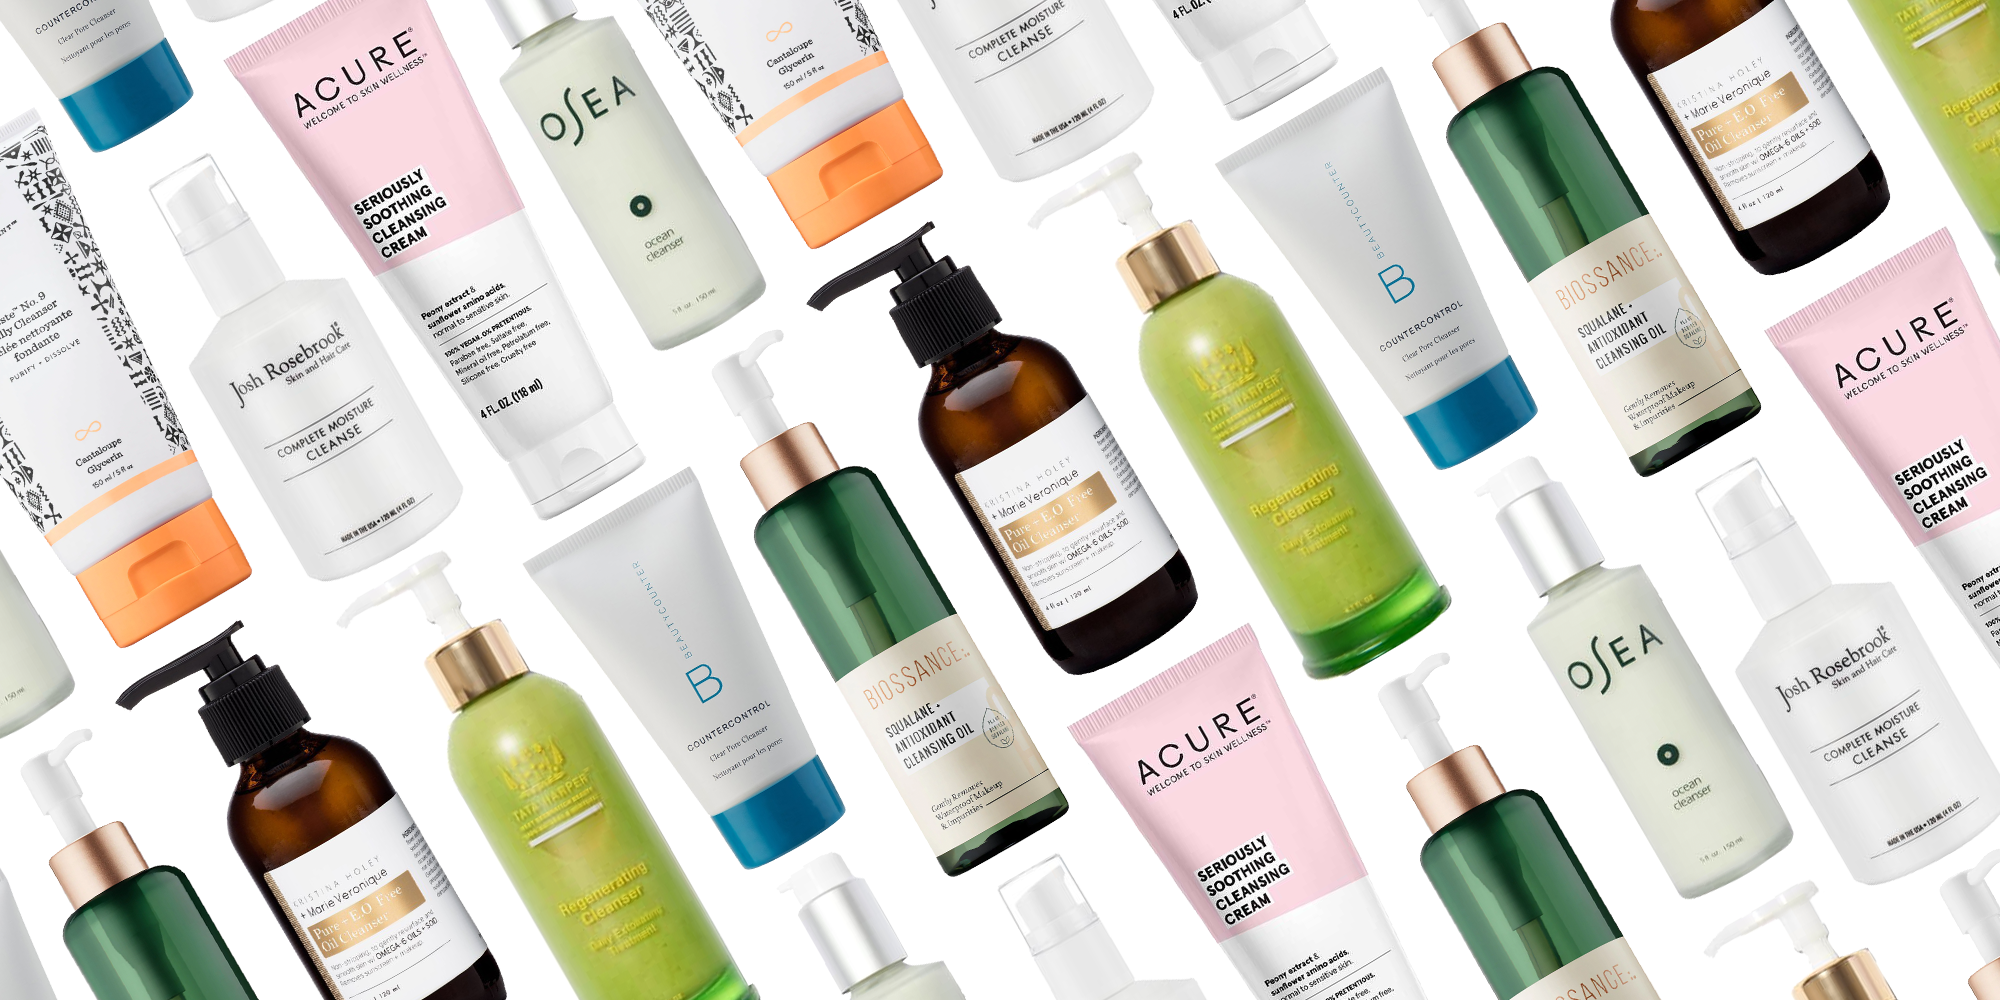 The 13 Natural and Organic Face Washes That Actually Work